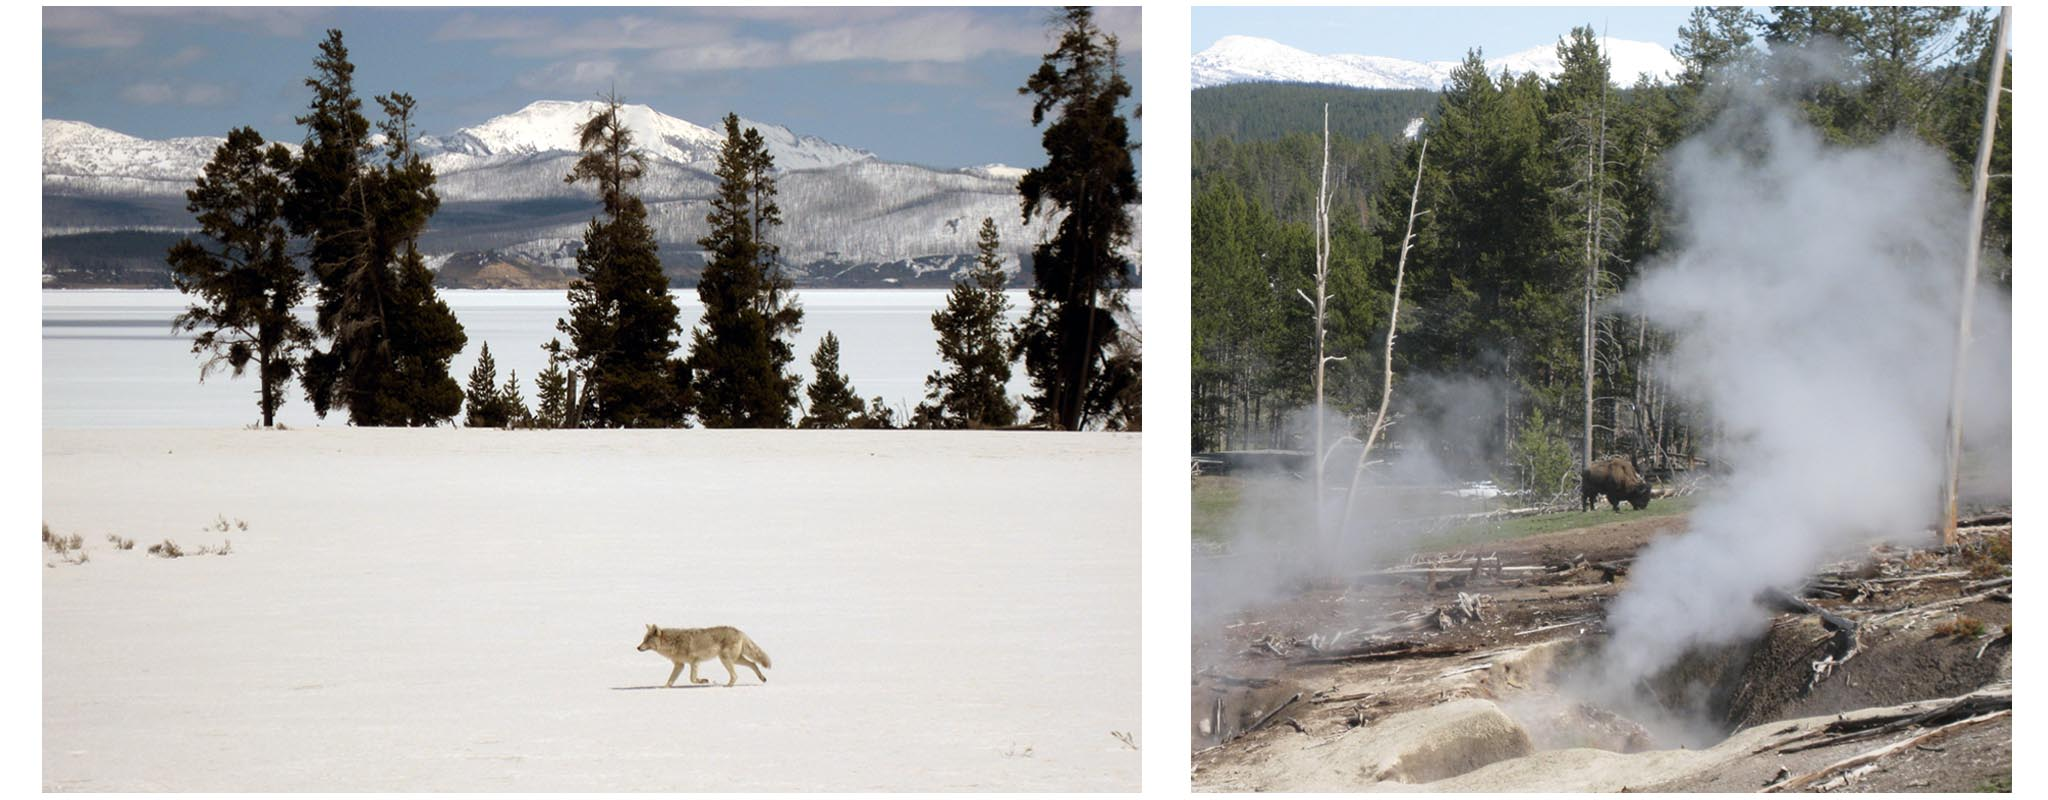 USA - Wyoming - Yellowstone National Park  //  Left:  Yellowstone Lake  Right:  Mud Volcano